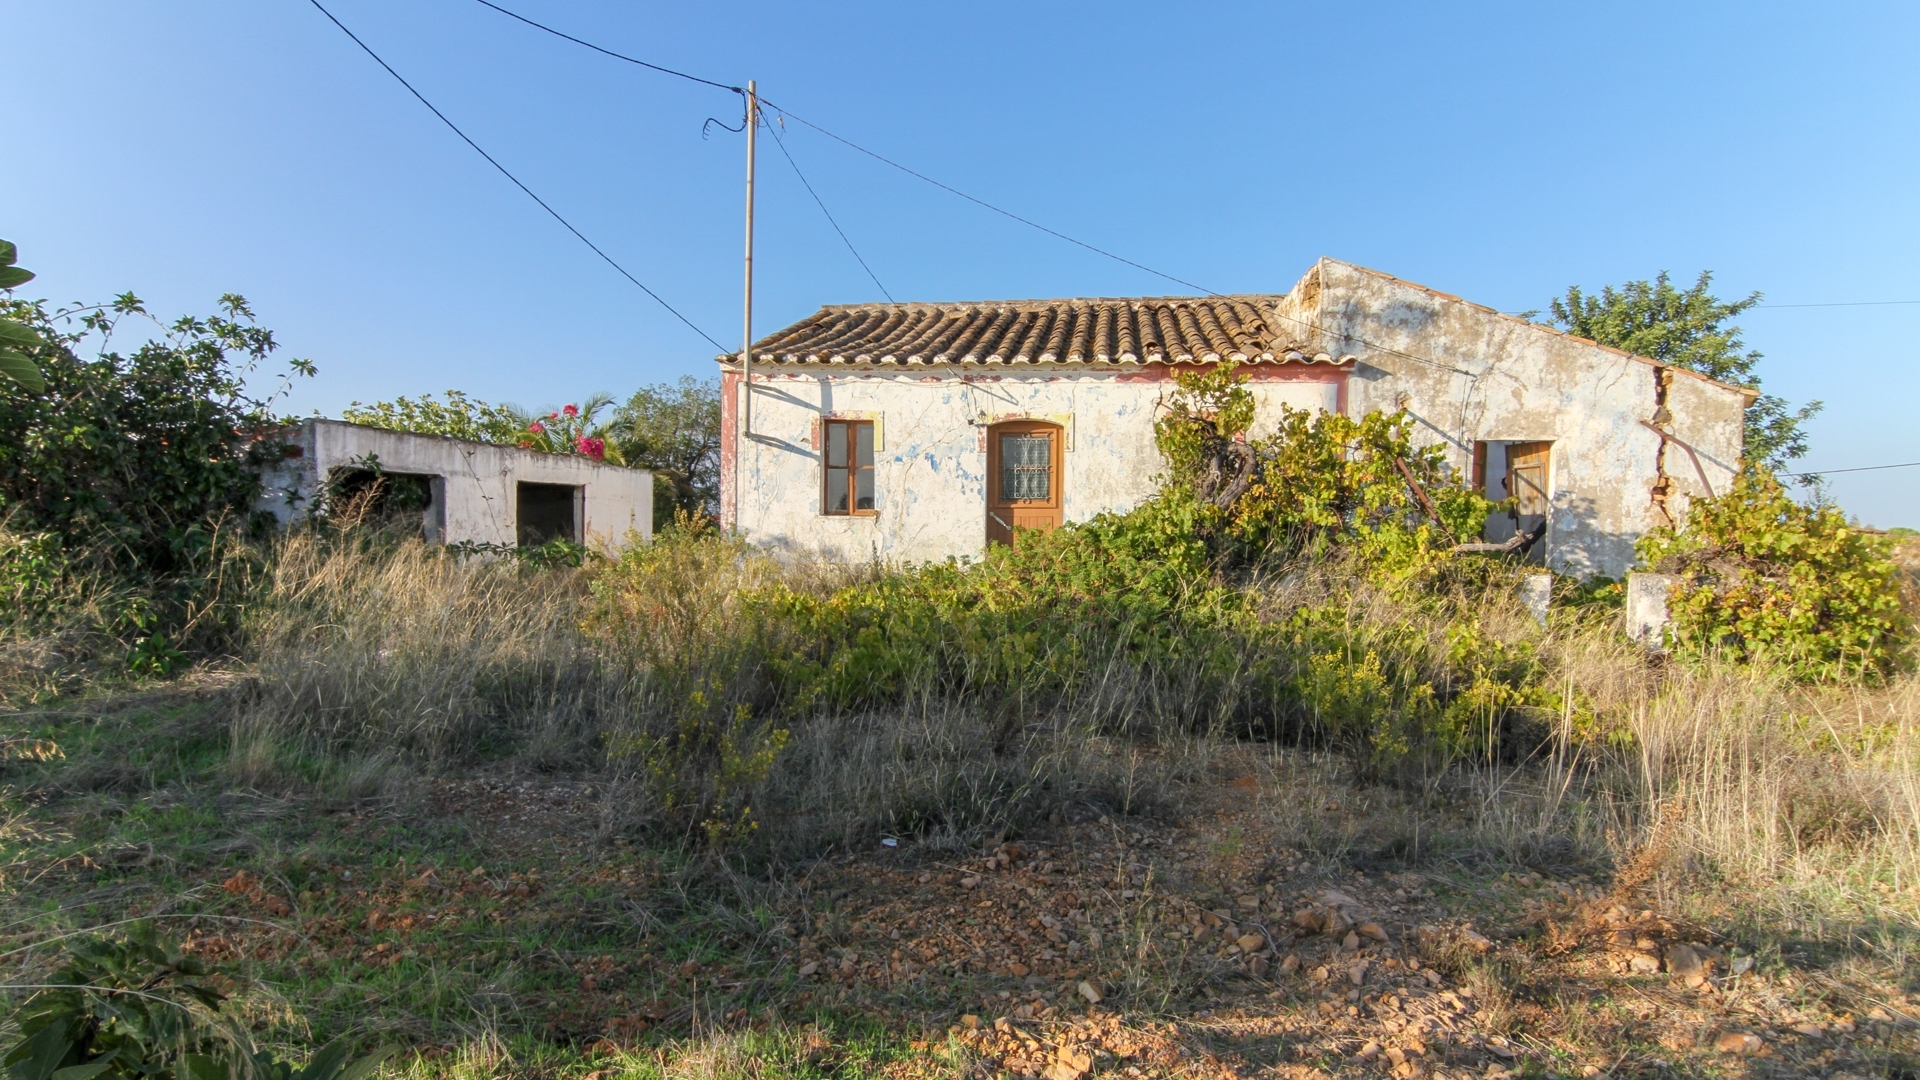 INVESTMENT - Old house to rebuild with large plot, next to Monte Rei Golf Course, Vila Nova de Cacela | TV1237 An old house on a plot of 13910 m², 11 km away from Tavira and Vila Real de Santo António, right at the entrance of Monte Rei Golf, is the ideal property for those who want to build a detached villa near Golf and only 6 km to the beach and the ocean.